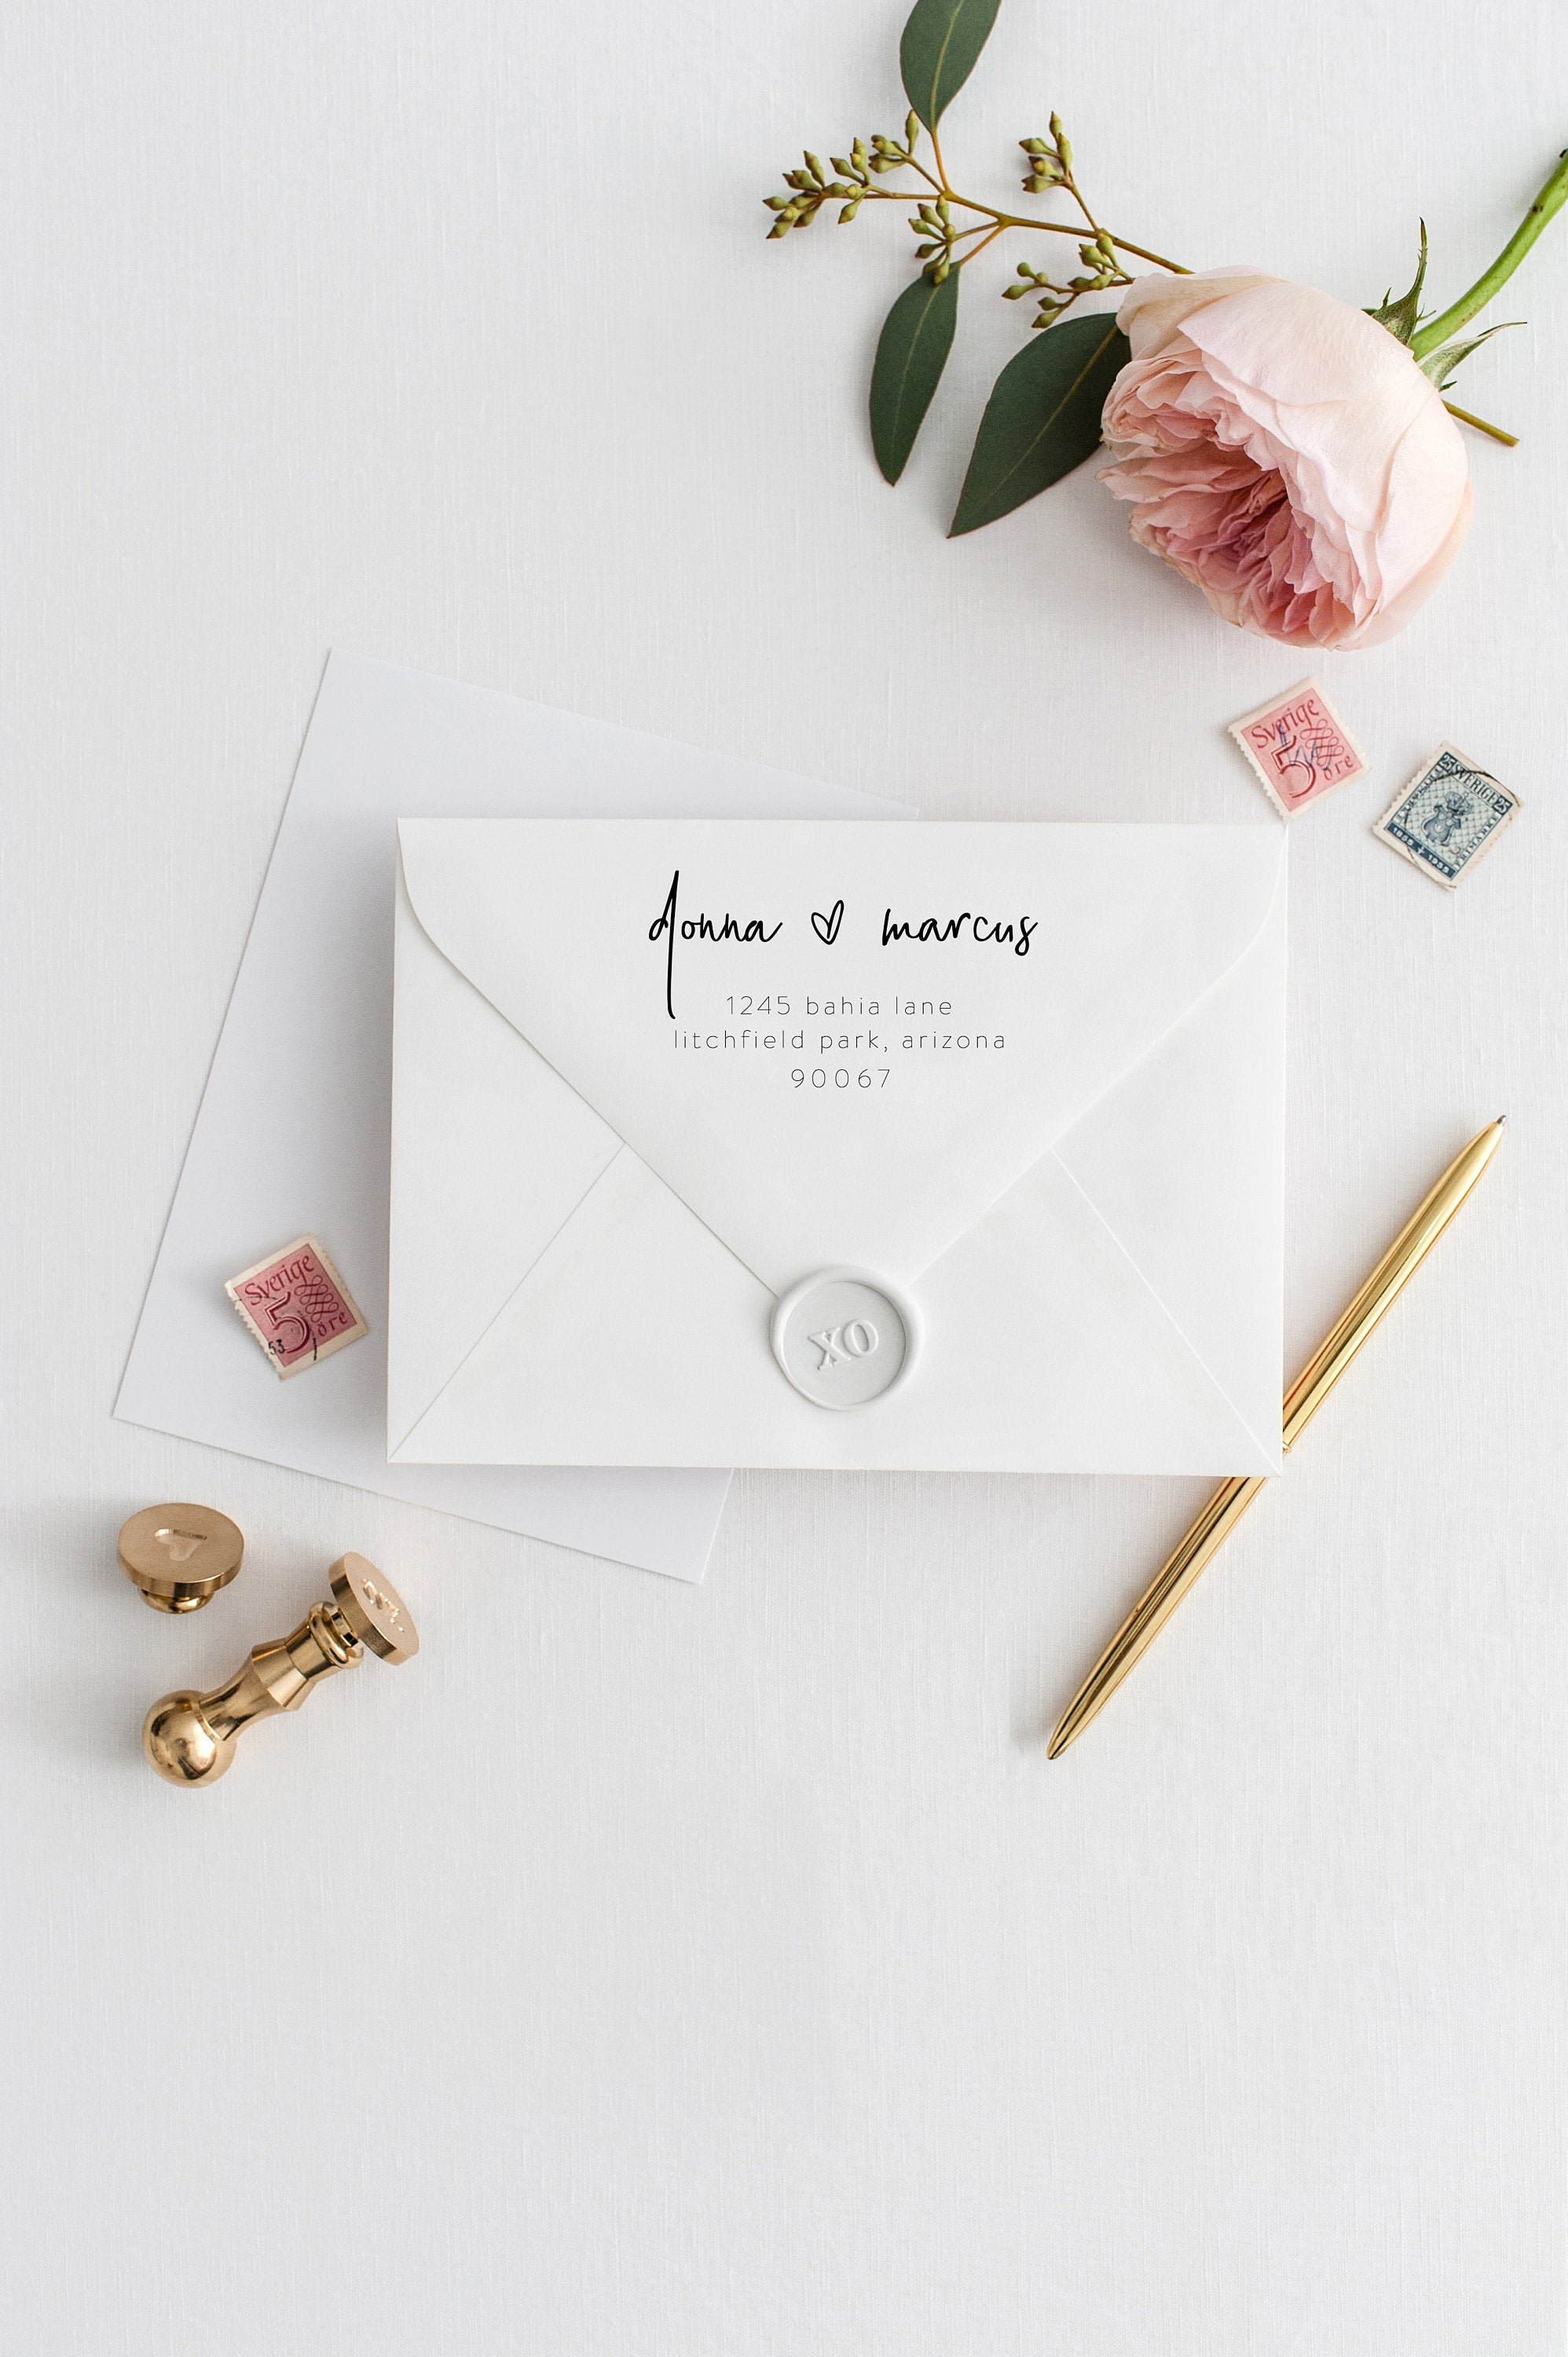 Envelope Addressing Template DIY Envelope Template for Wedding Printable Envelope for Save the Date Instant Download RSVP Envelope - DONNA